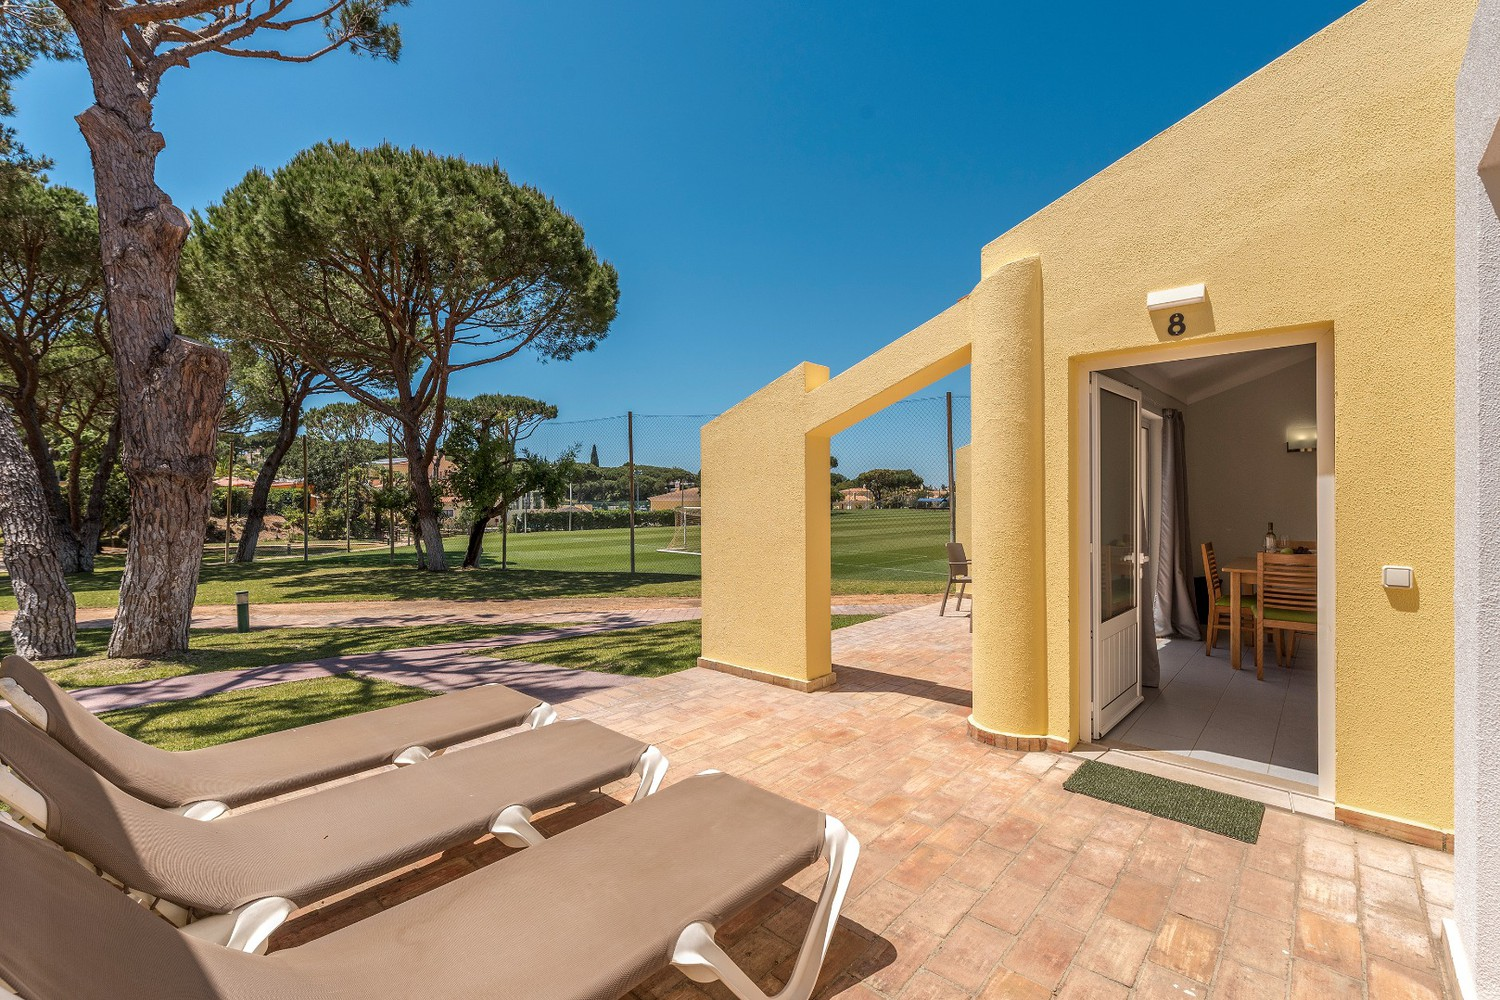 Accommodation with a private entrance, its own terrace with sunbeds and ample green area.